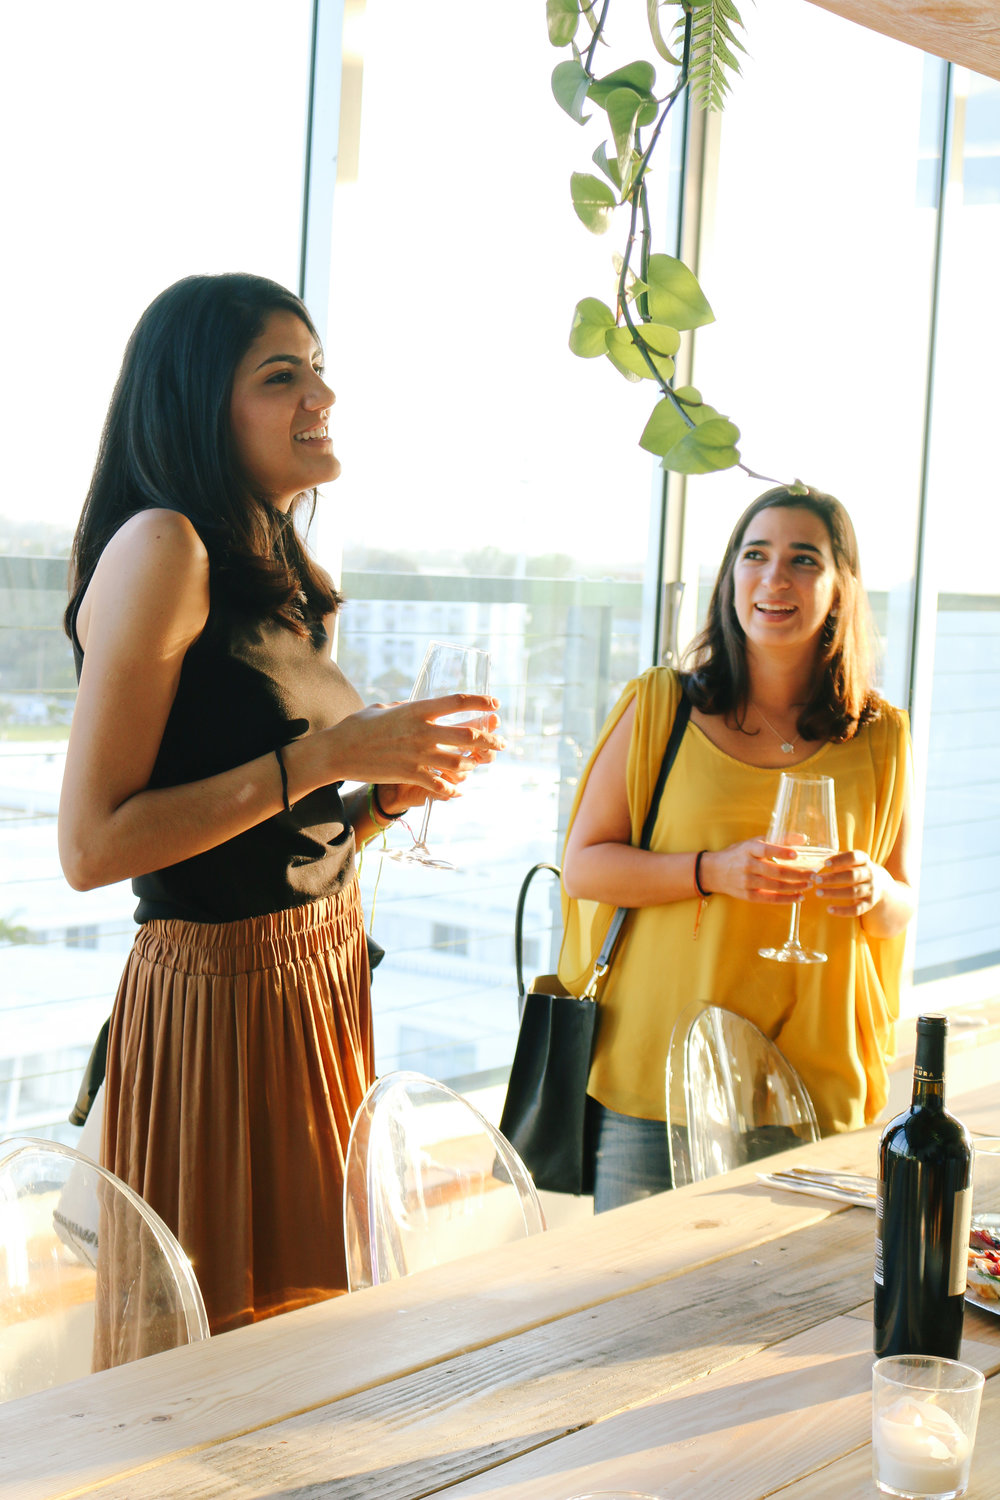 Women Who Wine Uncorked Conversations-Miami Wine Events-Wine Tasting Miami-21.jpg